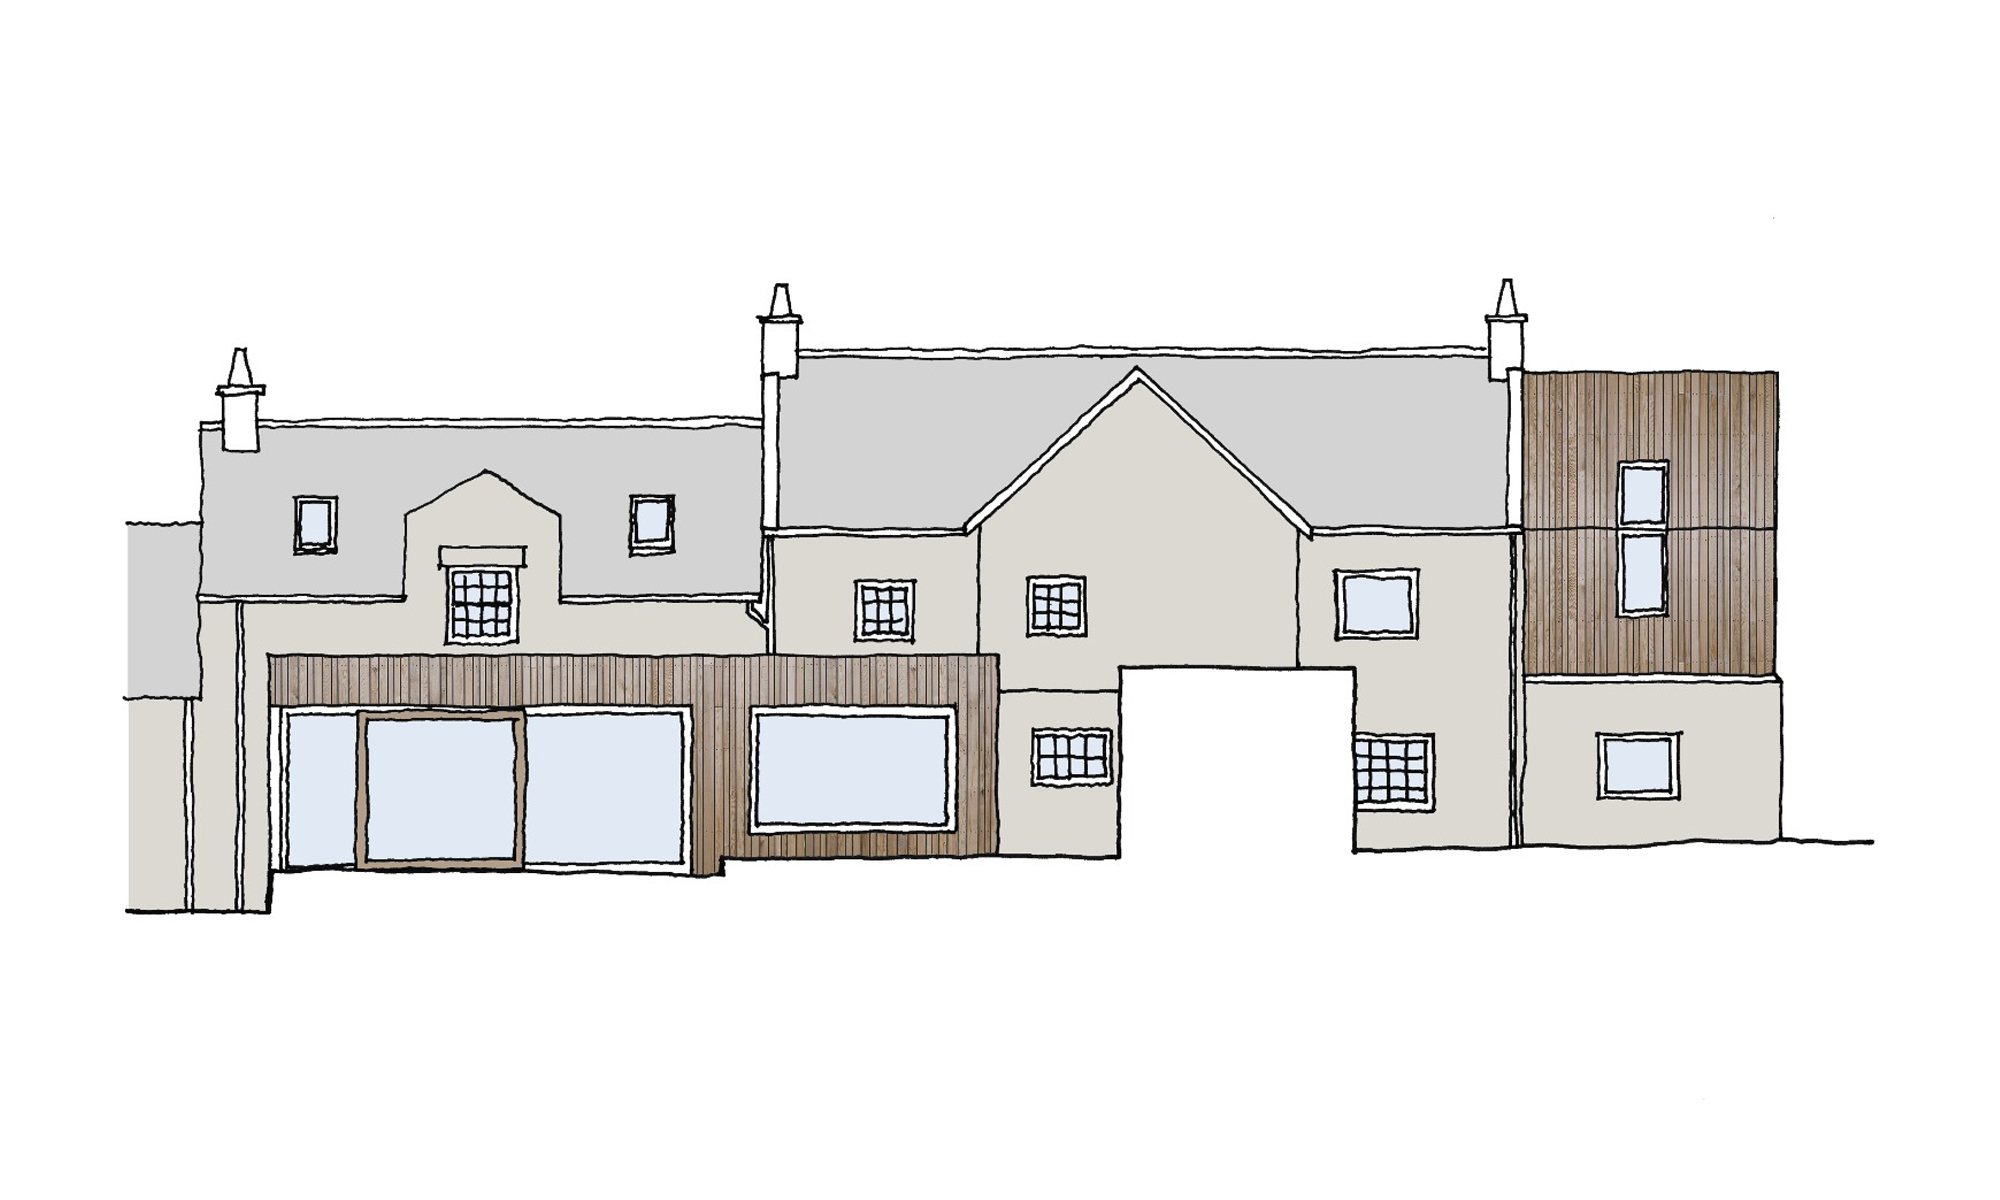 PLANNING PERMISSION GRANTED HEATHERDEN HOUSE